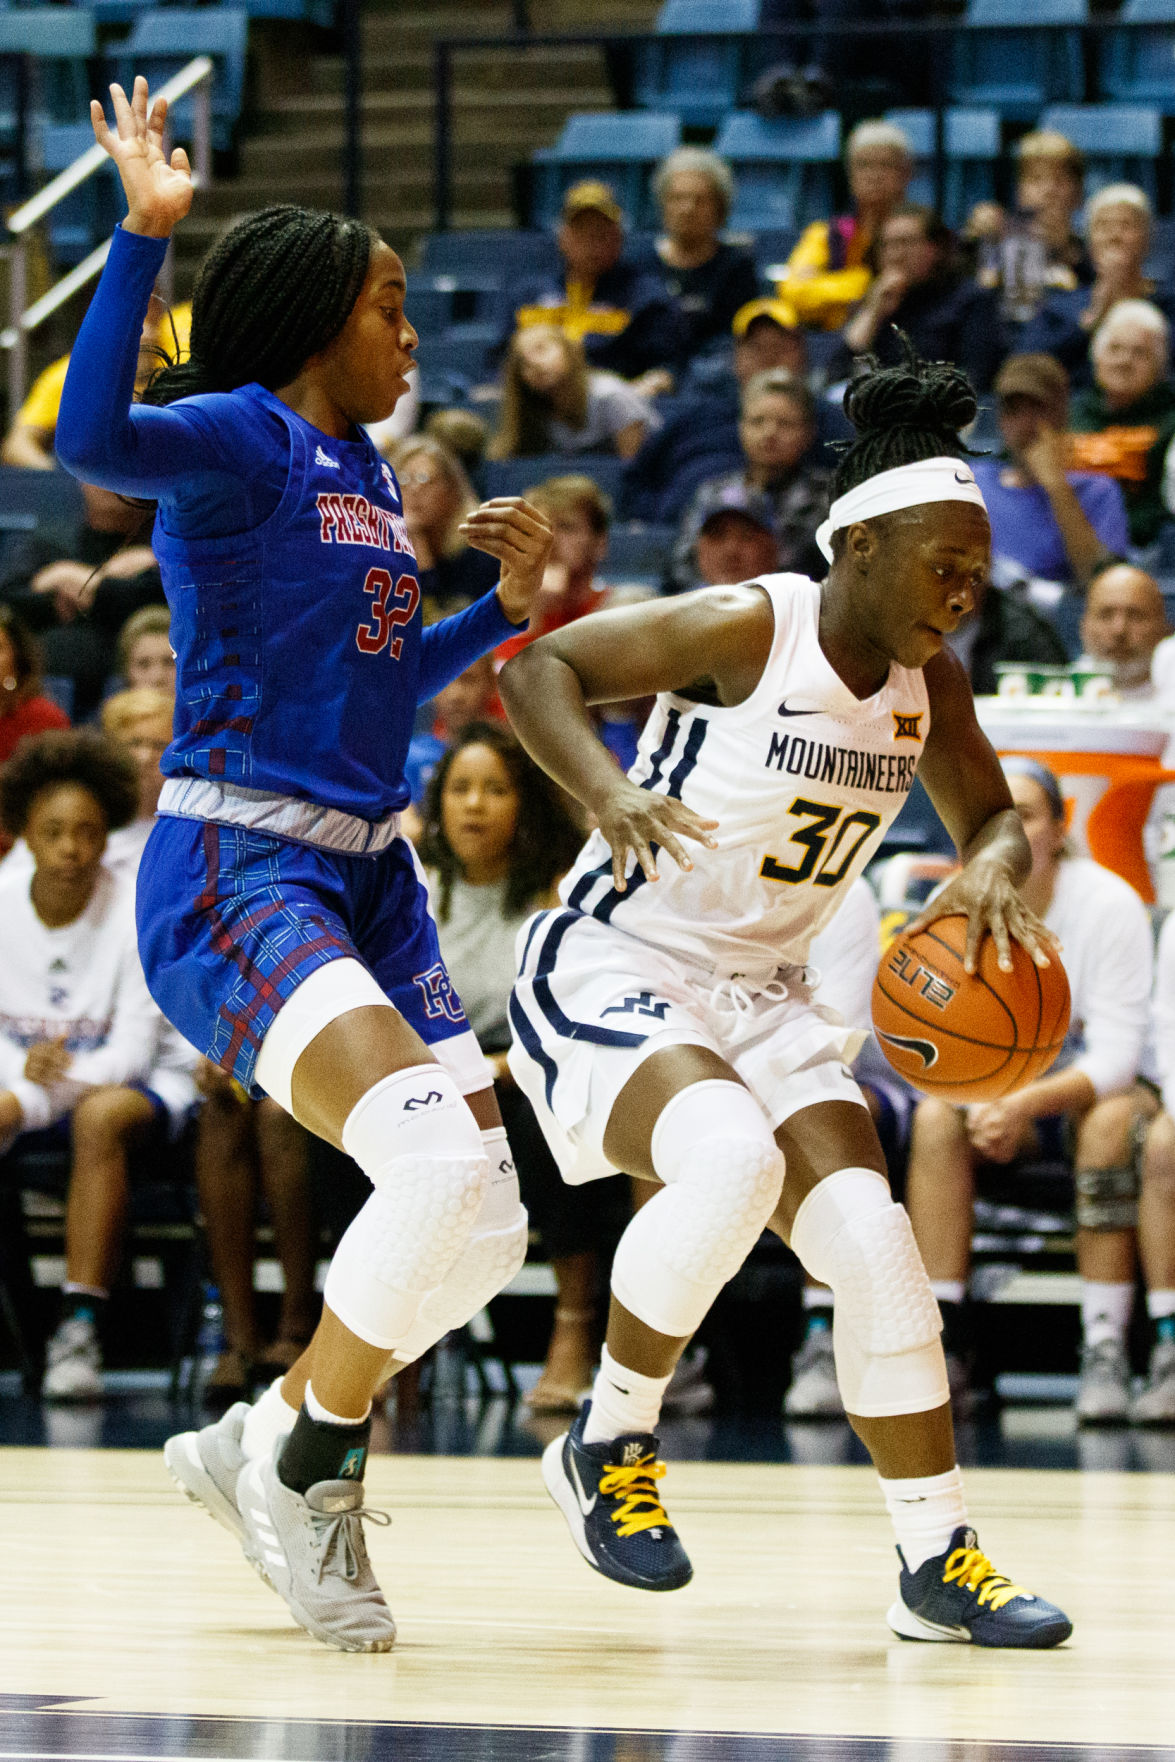 West Virginia's Madisen Smith charges towards the basket Presbyterian's Jade Compton defends during West Virginia's game against Presbyterian on Nov. 10, 2019 at the Coliseum.